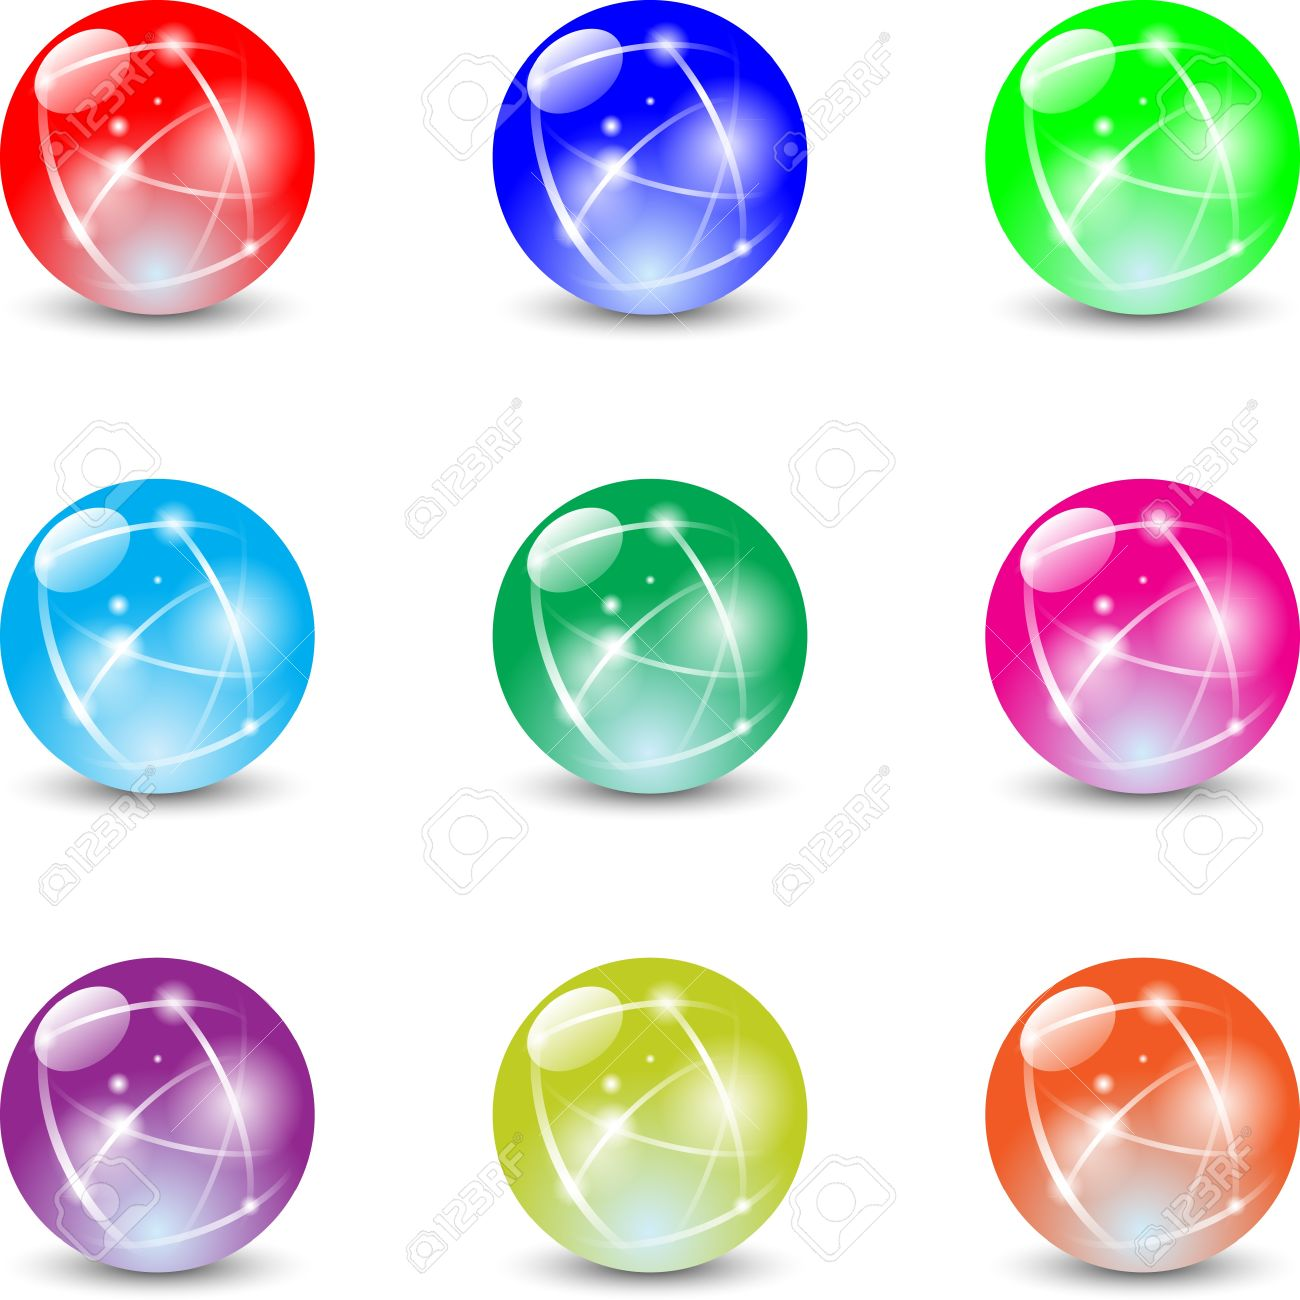 7 marbles clipart Transparent pictures on F.